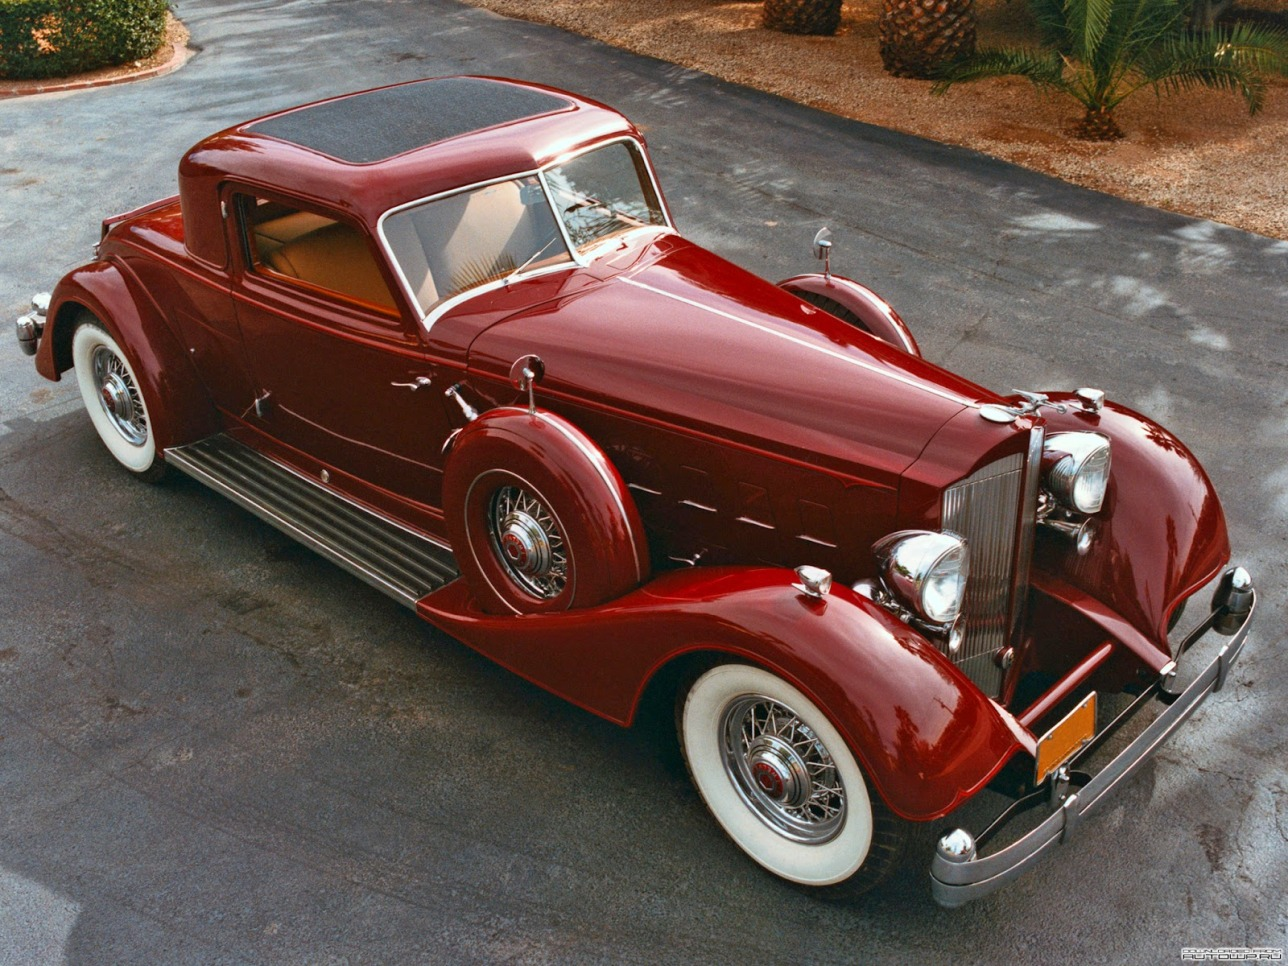 https://disaffectedmusings.files.wordpress.com/2019/02/d7d57-packard-twelve-sport-coupe-dietrich-1933.jpg?w=1288&h=966